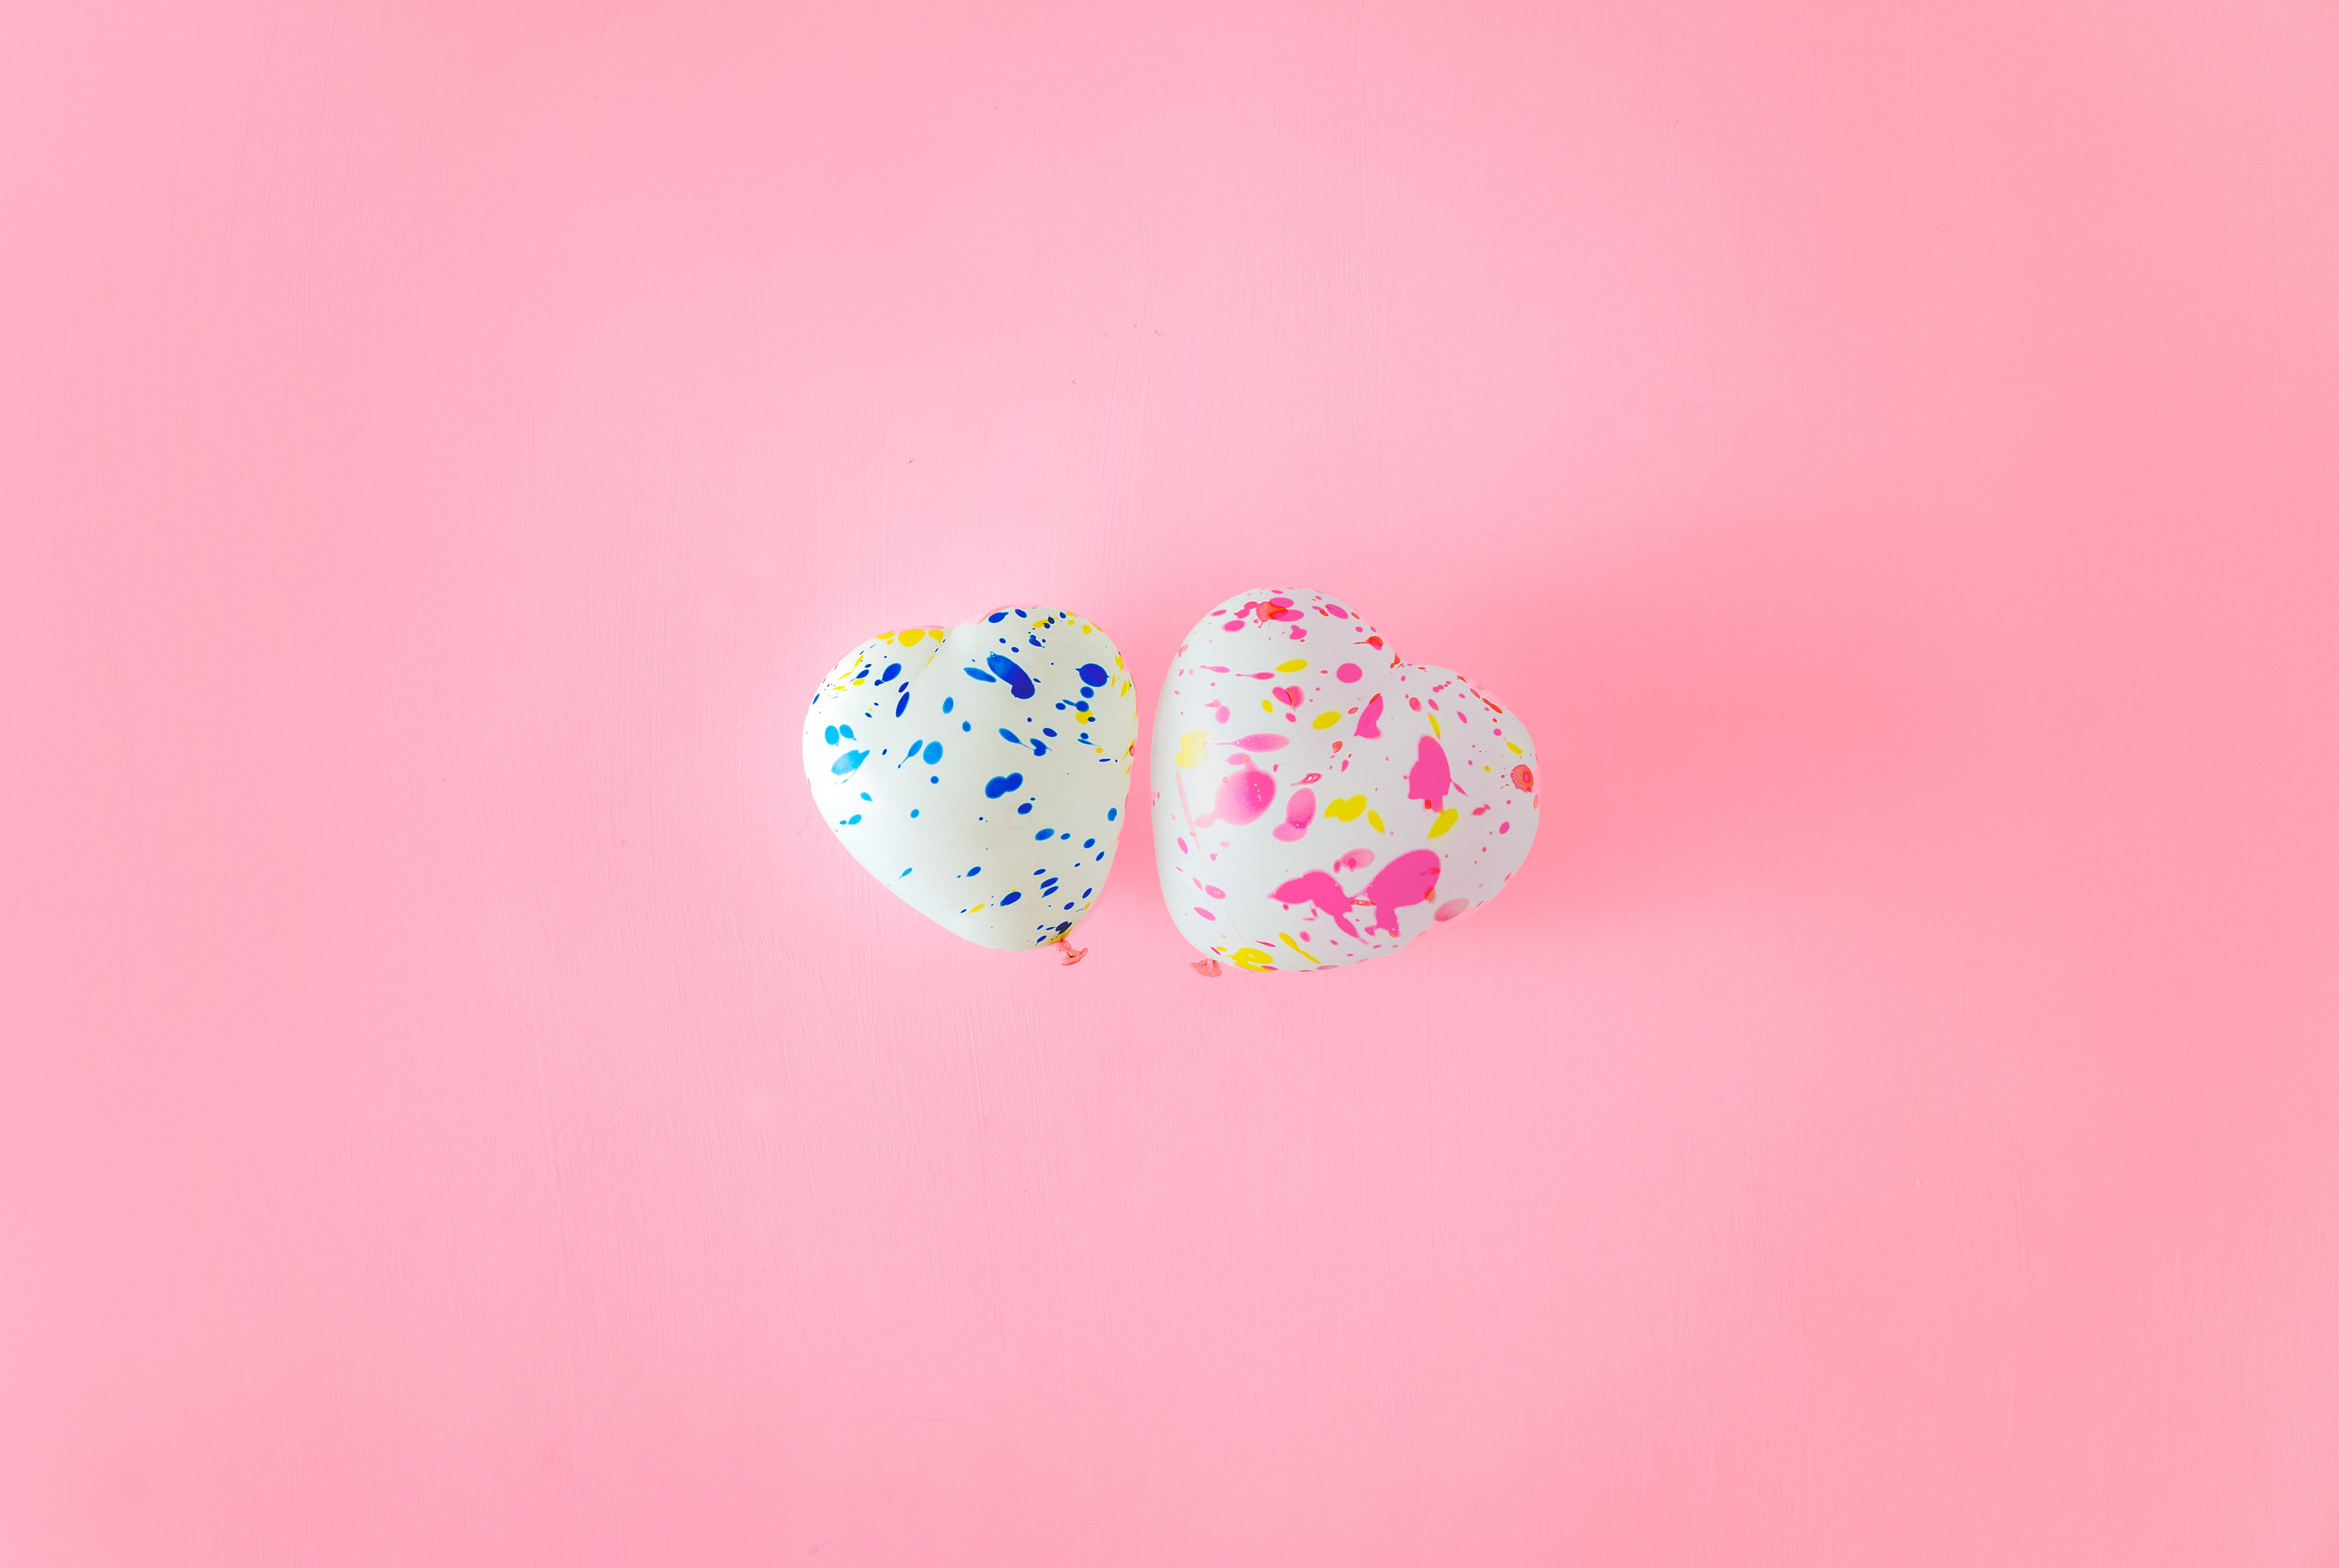 Free stock photo of love, blue, cute, pink